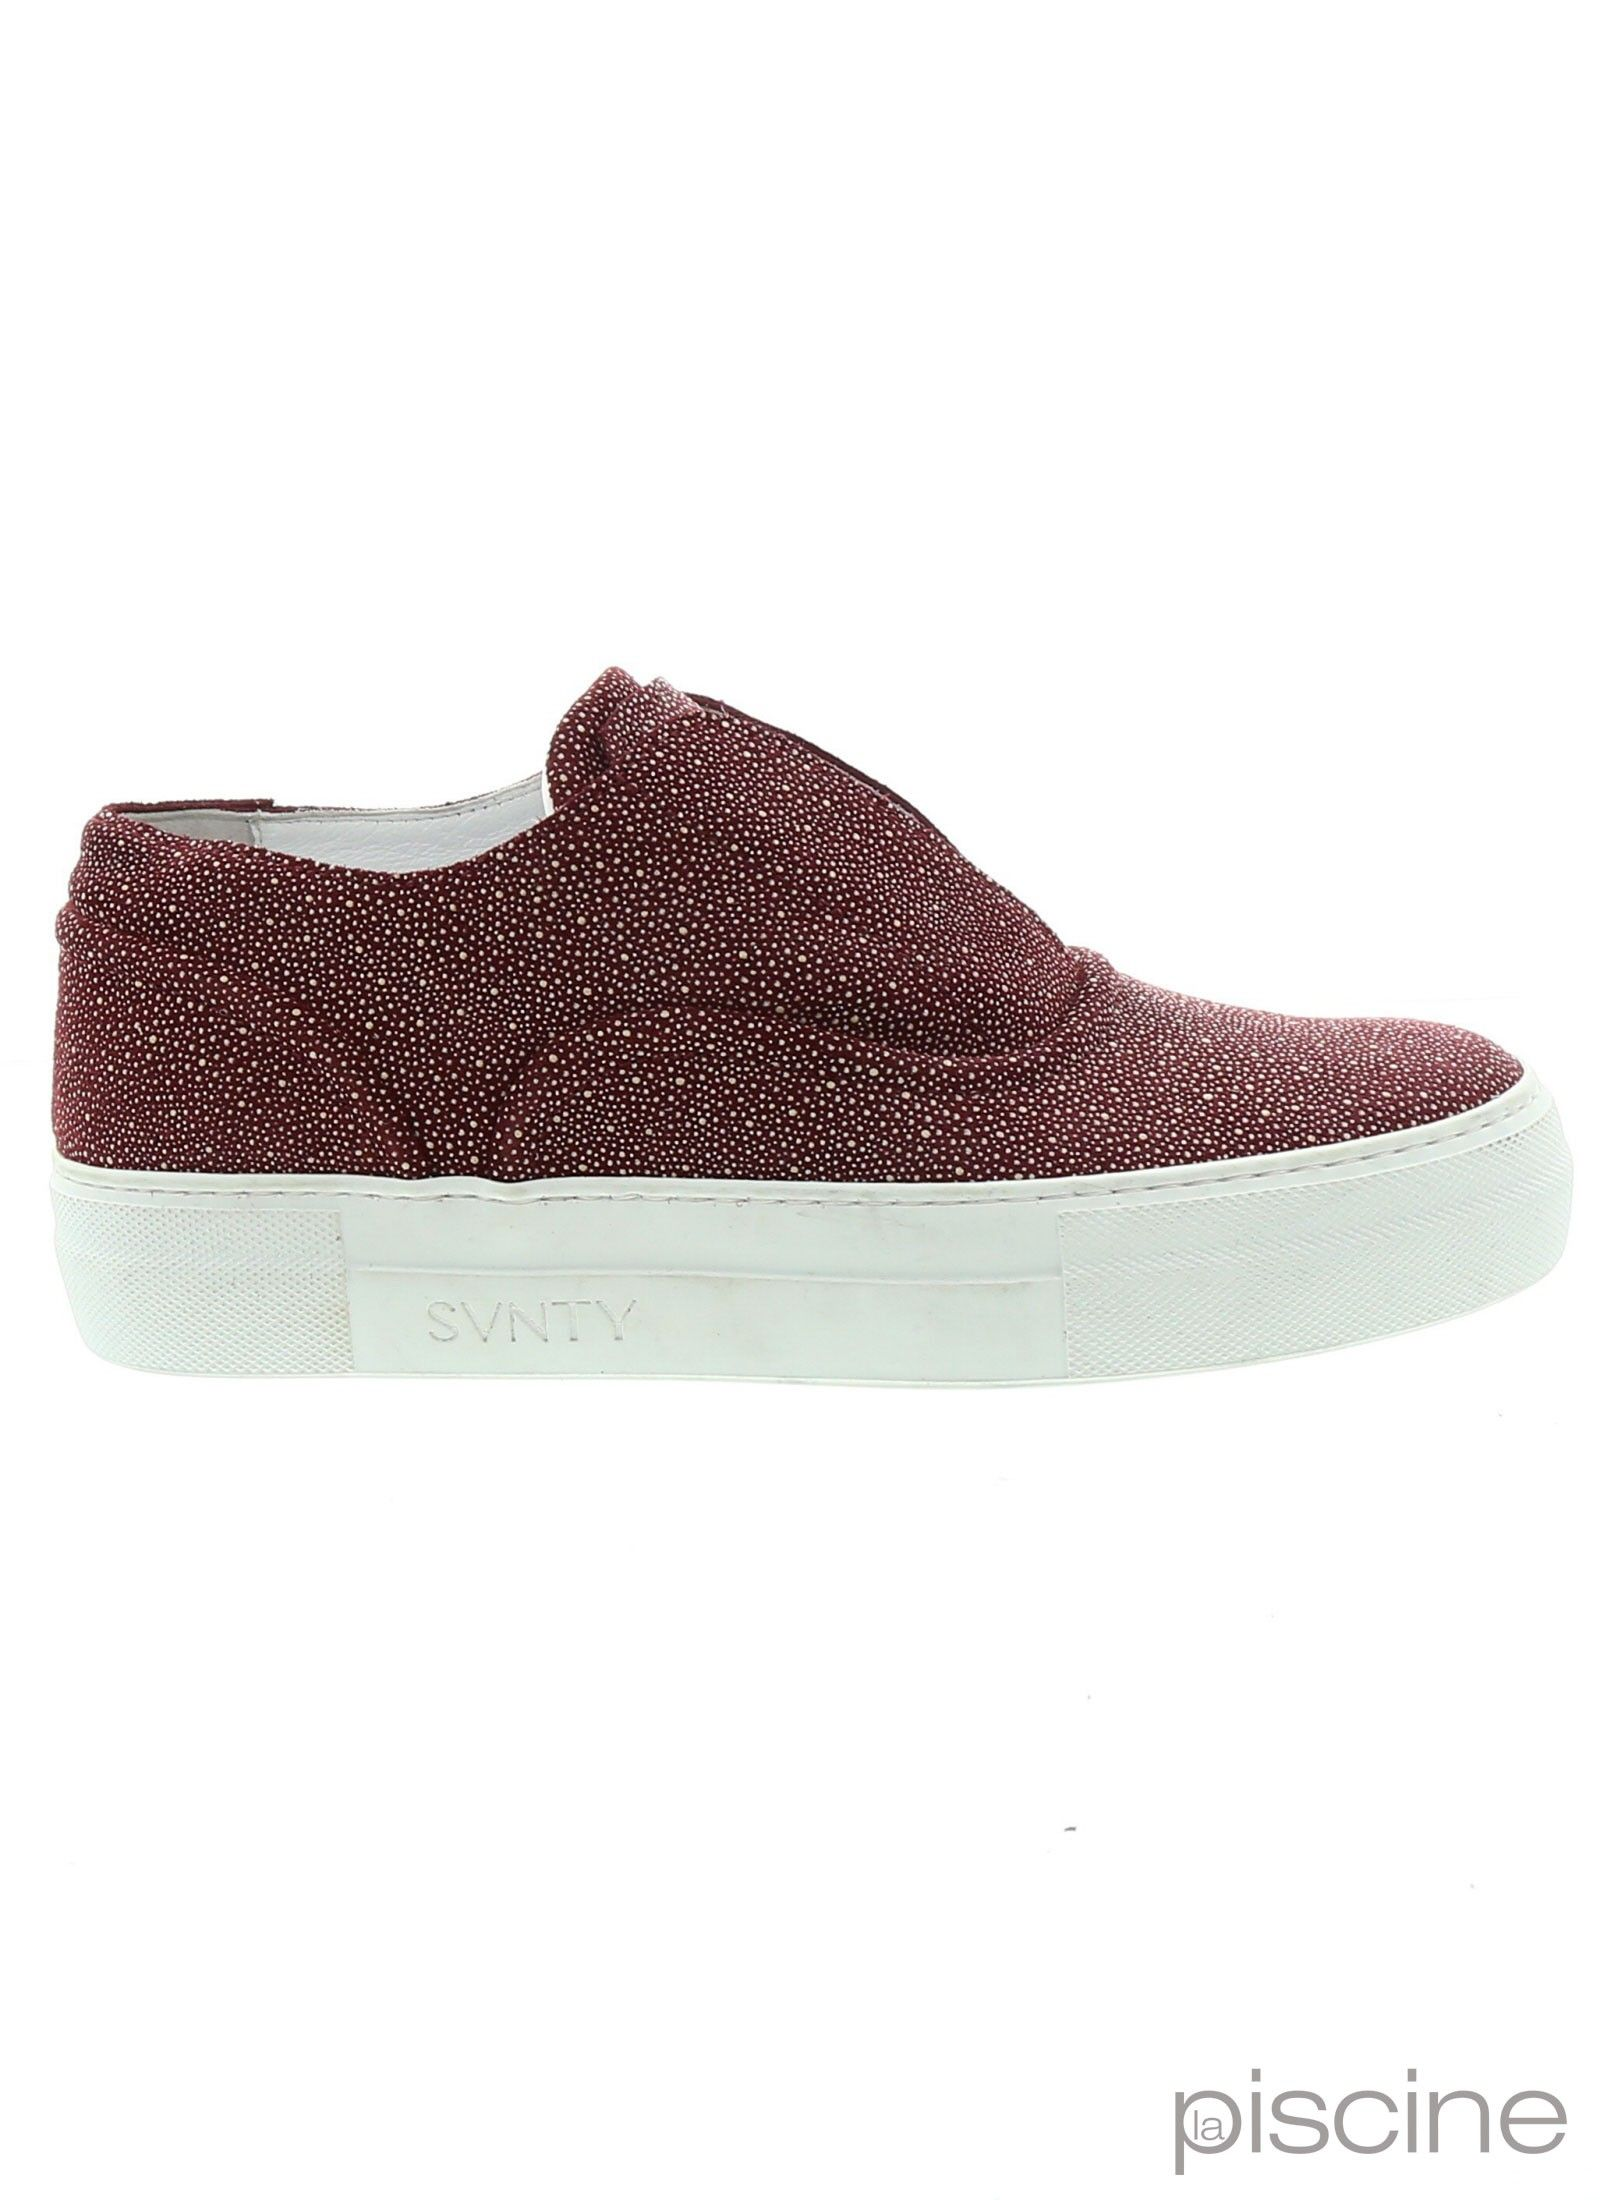 Slip_on bordeaux SVNTY